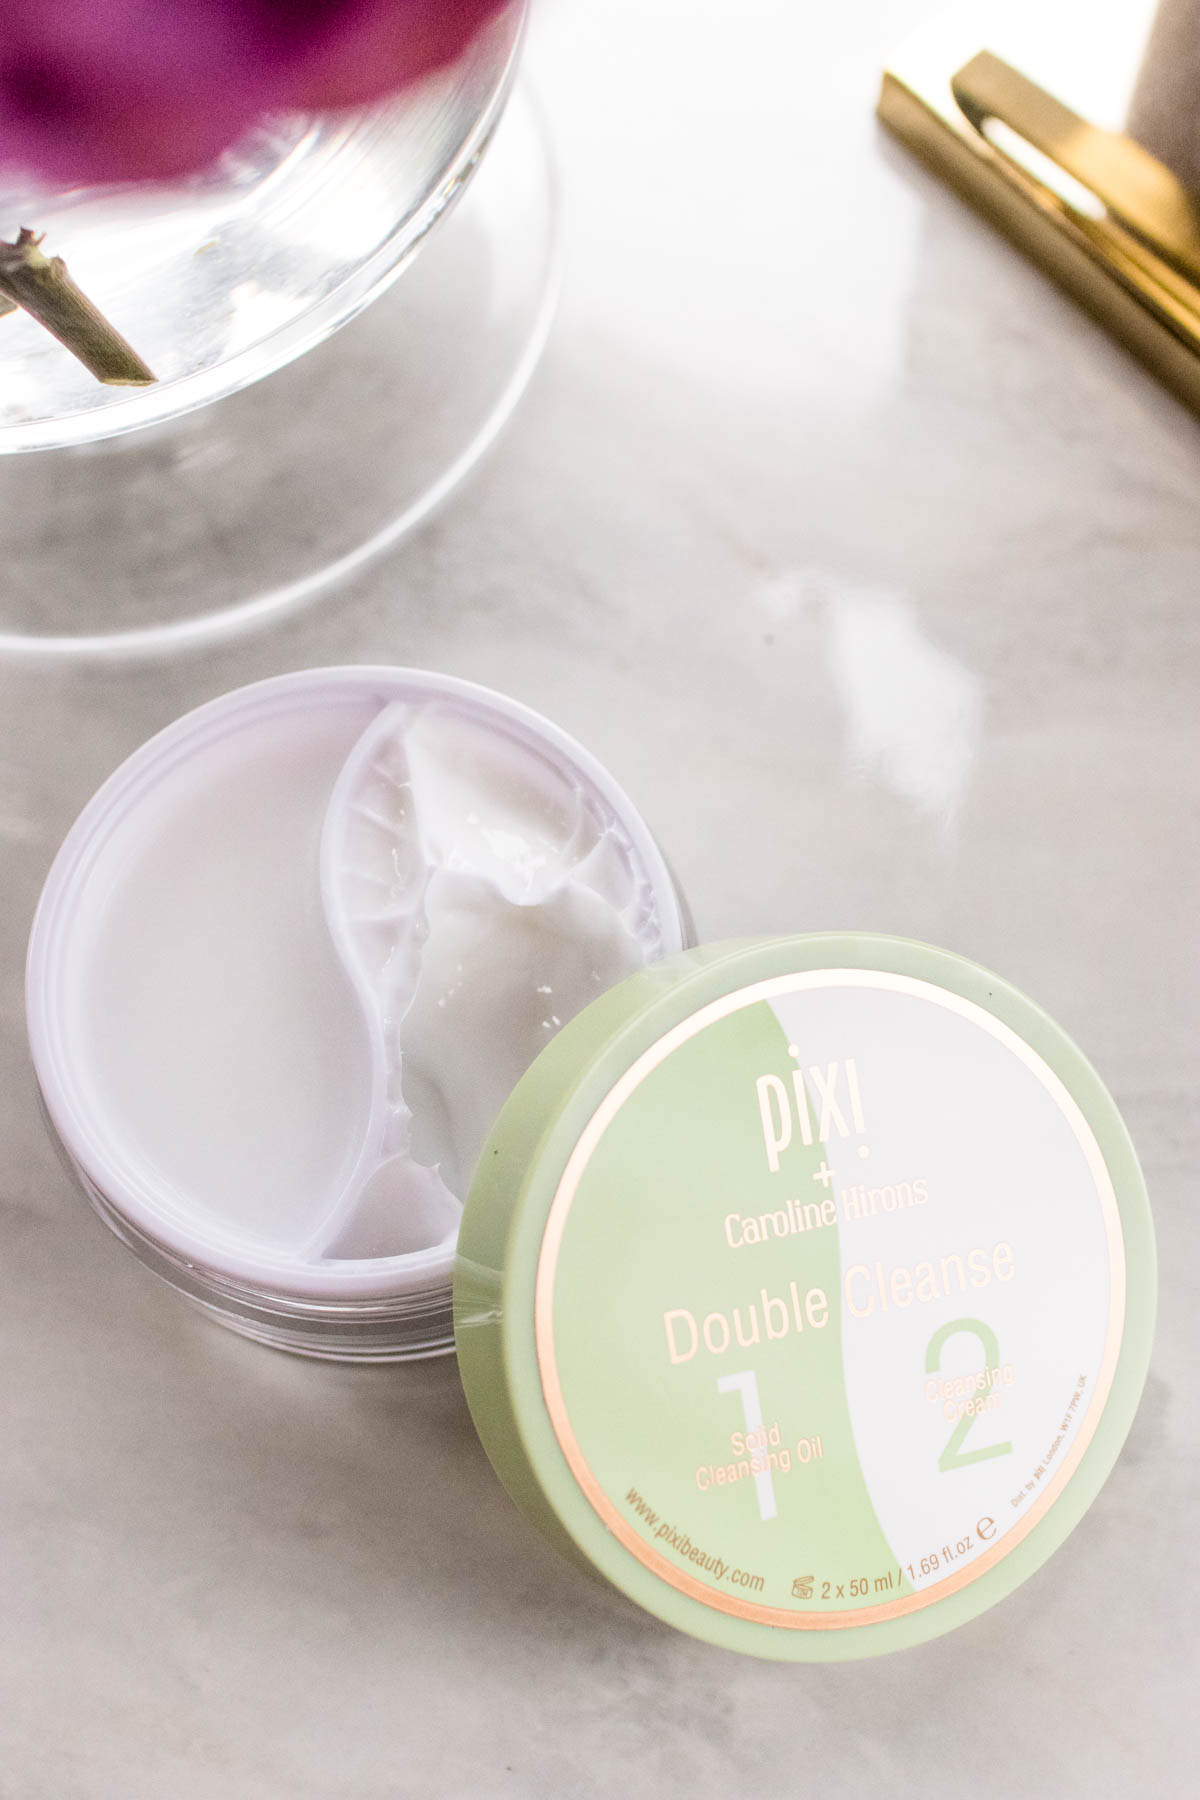 How to Remove Halloween Makeup | Pixi Beauty Caroline Hirons Double Cleanse Review | The Beauty Lesson | The Beauty Vanity